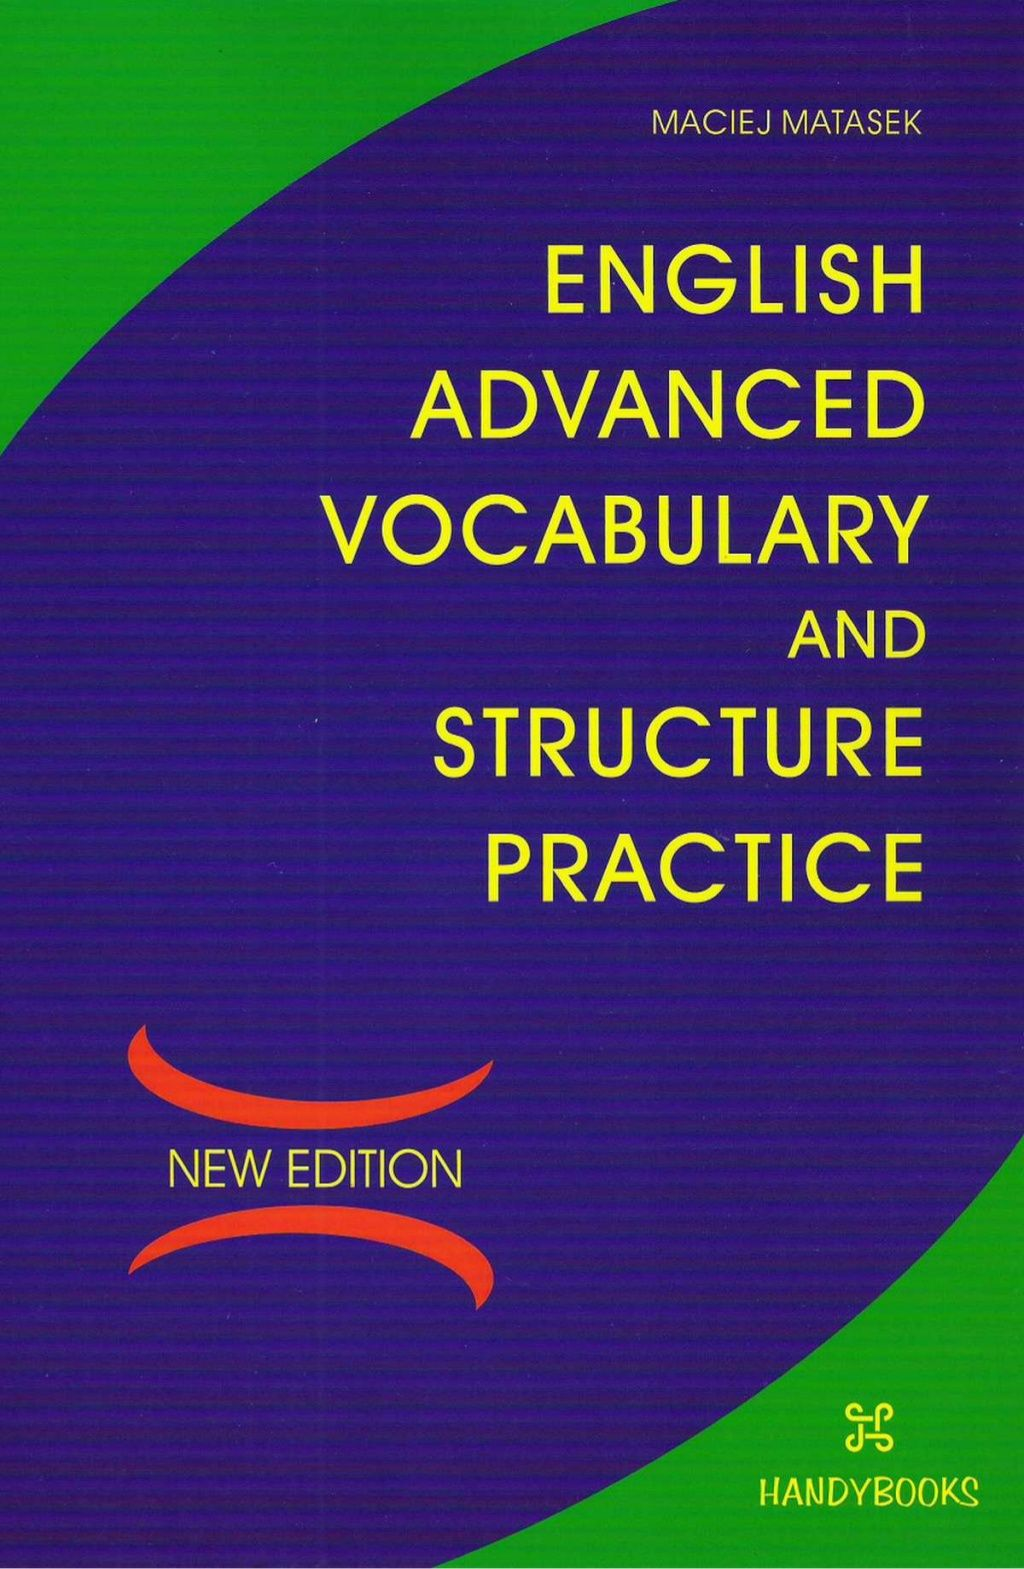 English Advanced Vocabulary And Structure Practice By